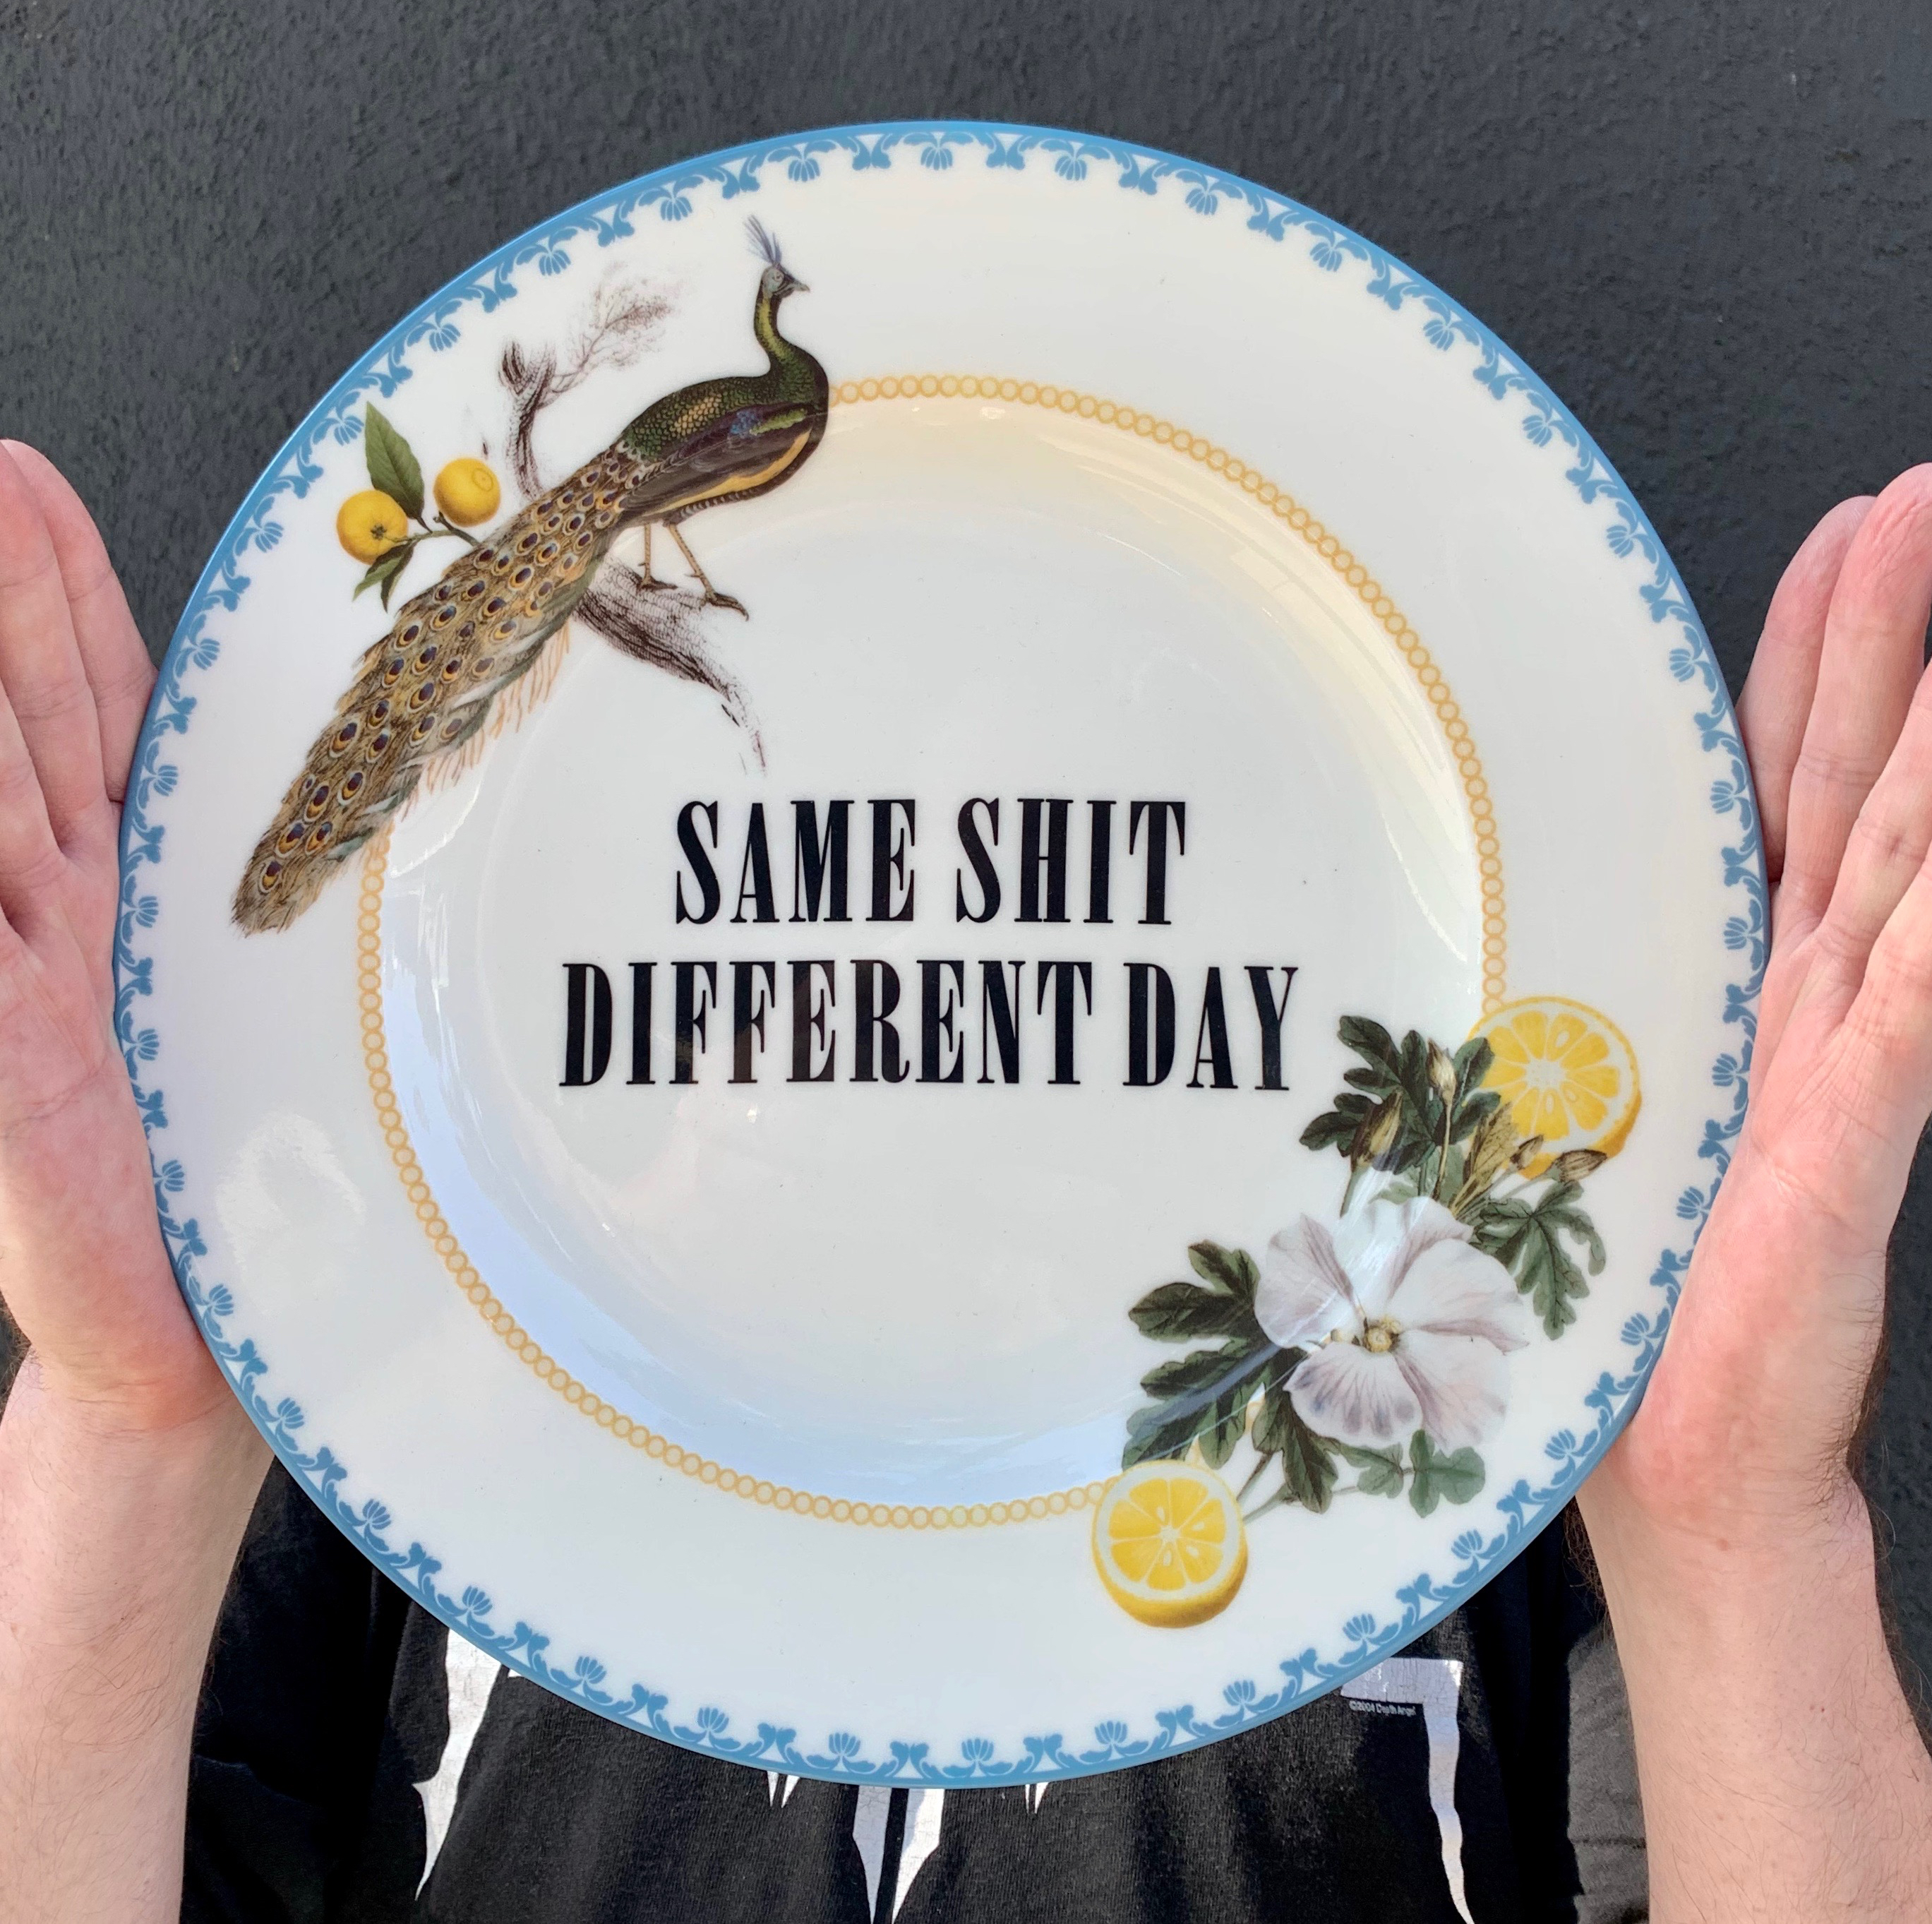 Same Shit, Diffrent Day - Custom Printed Ceramic Plate Edition